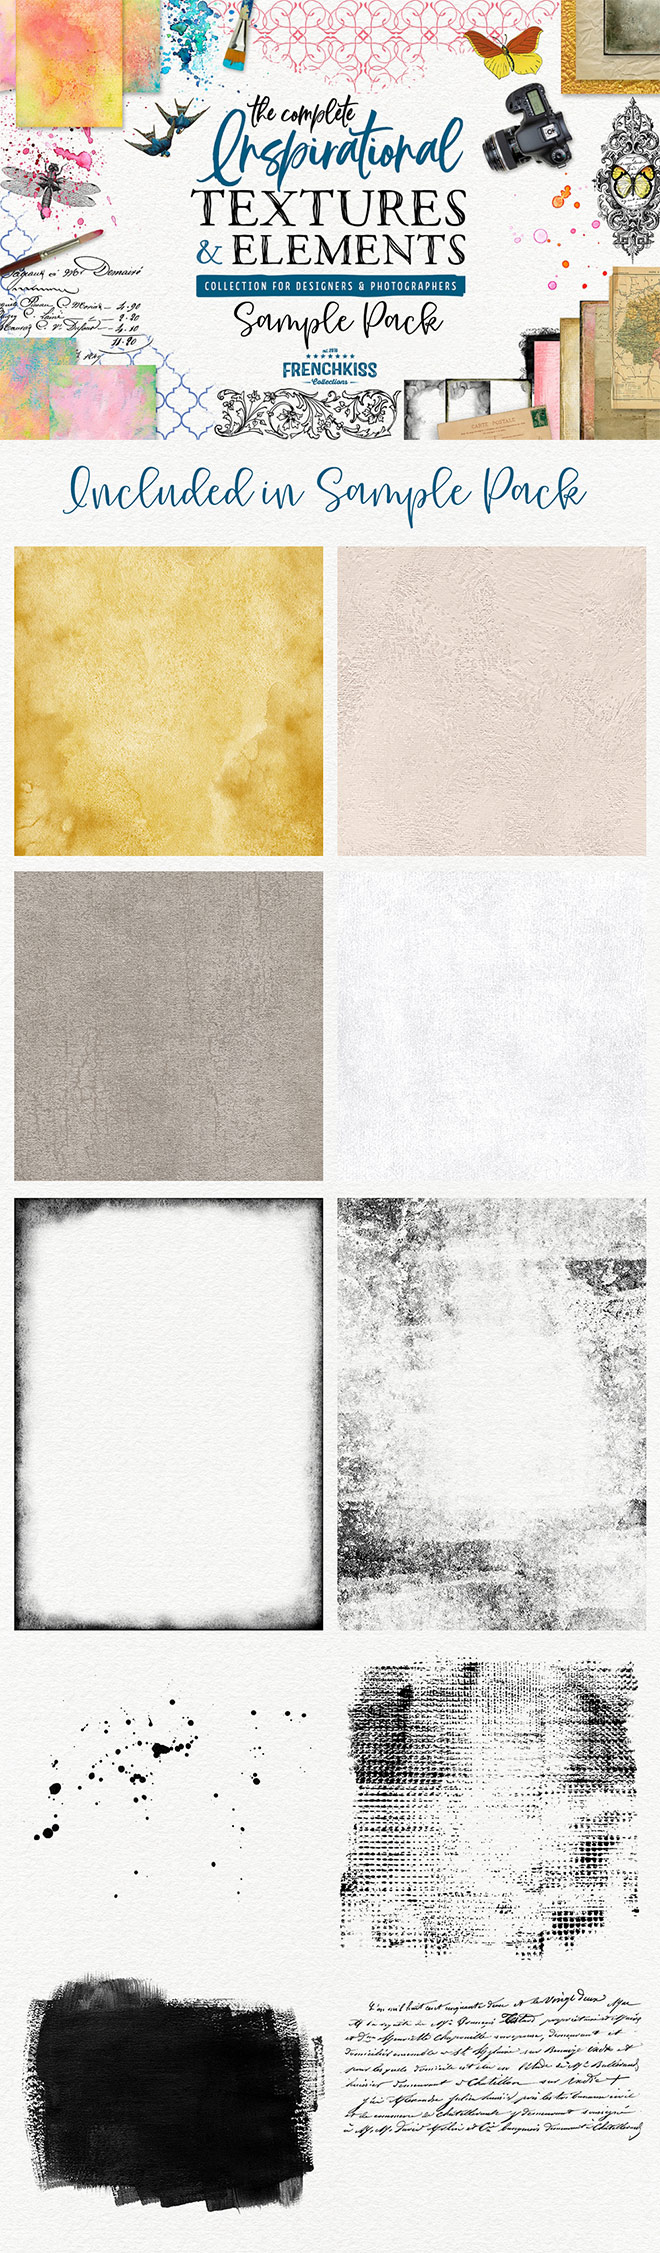 included in sample pack - 10 Assets from the Inspirational Textures & Elements Collection